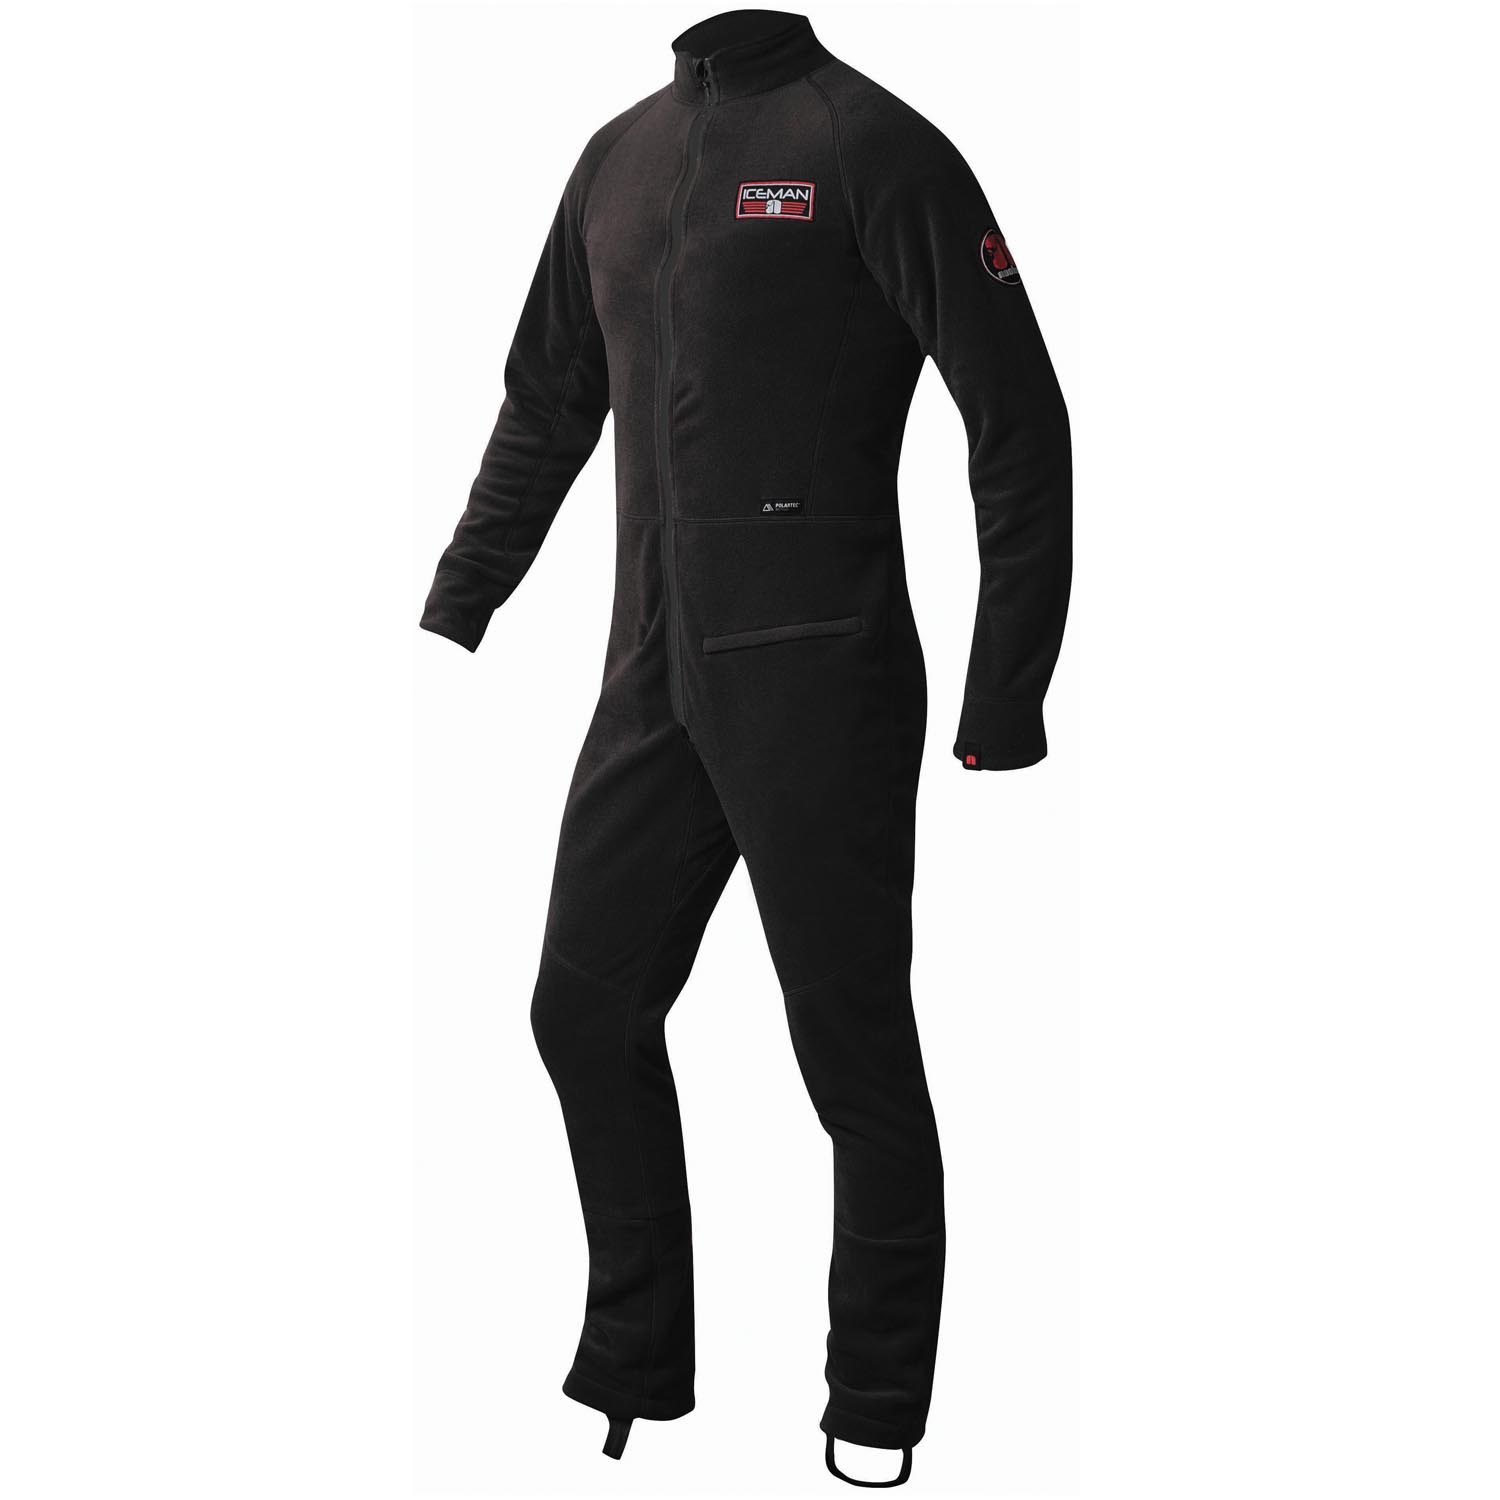 Nookie Iceman All-In-One Thermal Suit - Black Ice